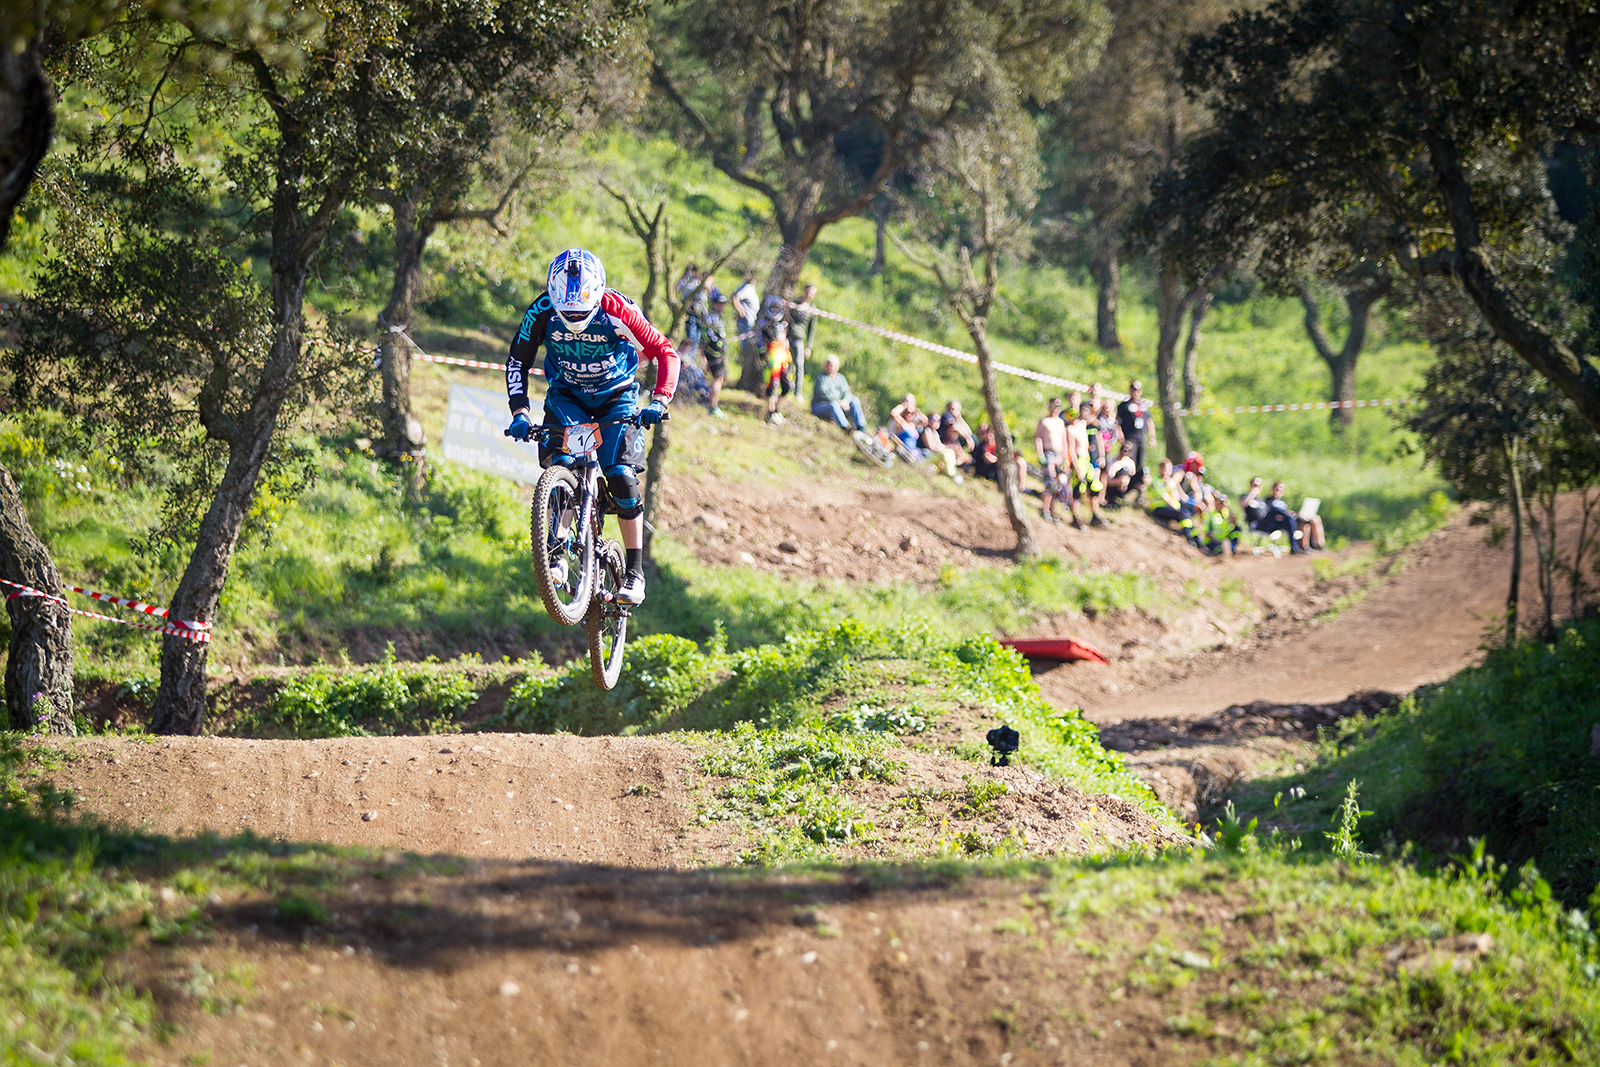 Open practice and Qualification during round 1 of the 4X Pro Tour at Azur Bike Park, Rocqbrune, , France on April 08 2017. Photo: Charles A Robertson